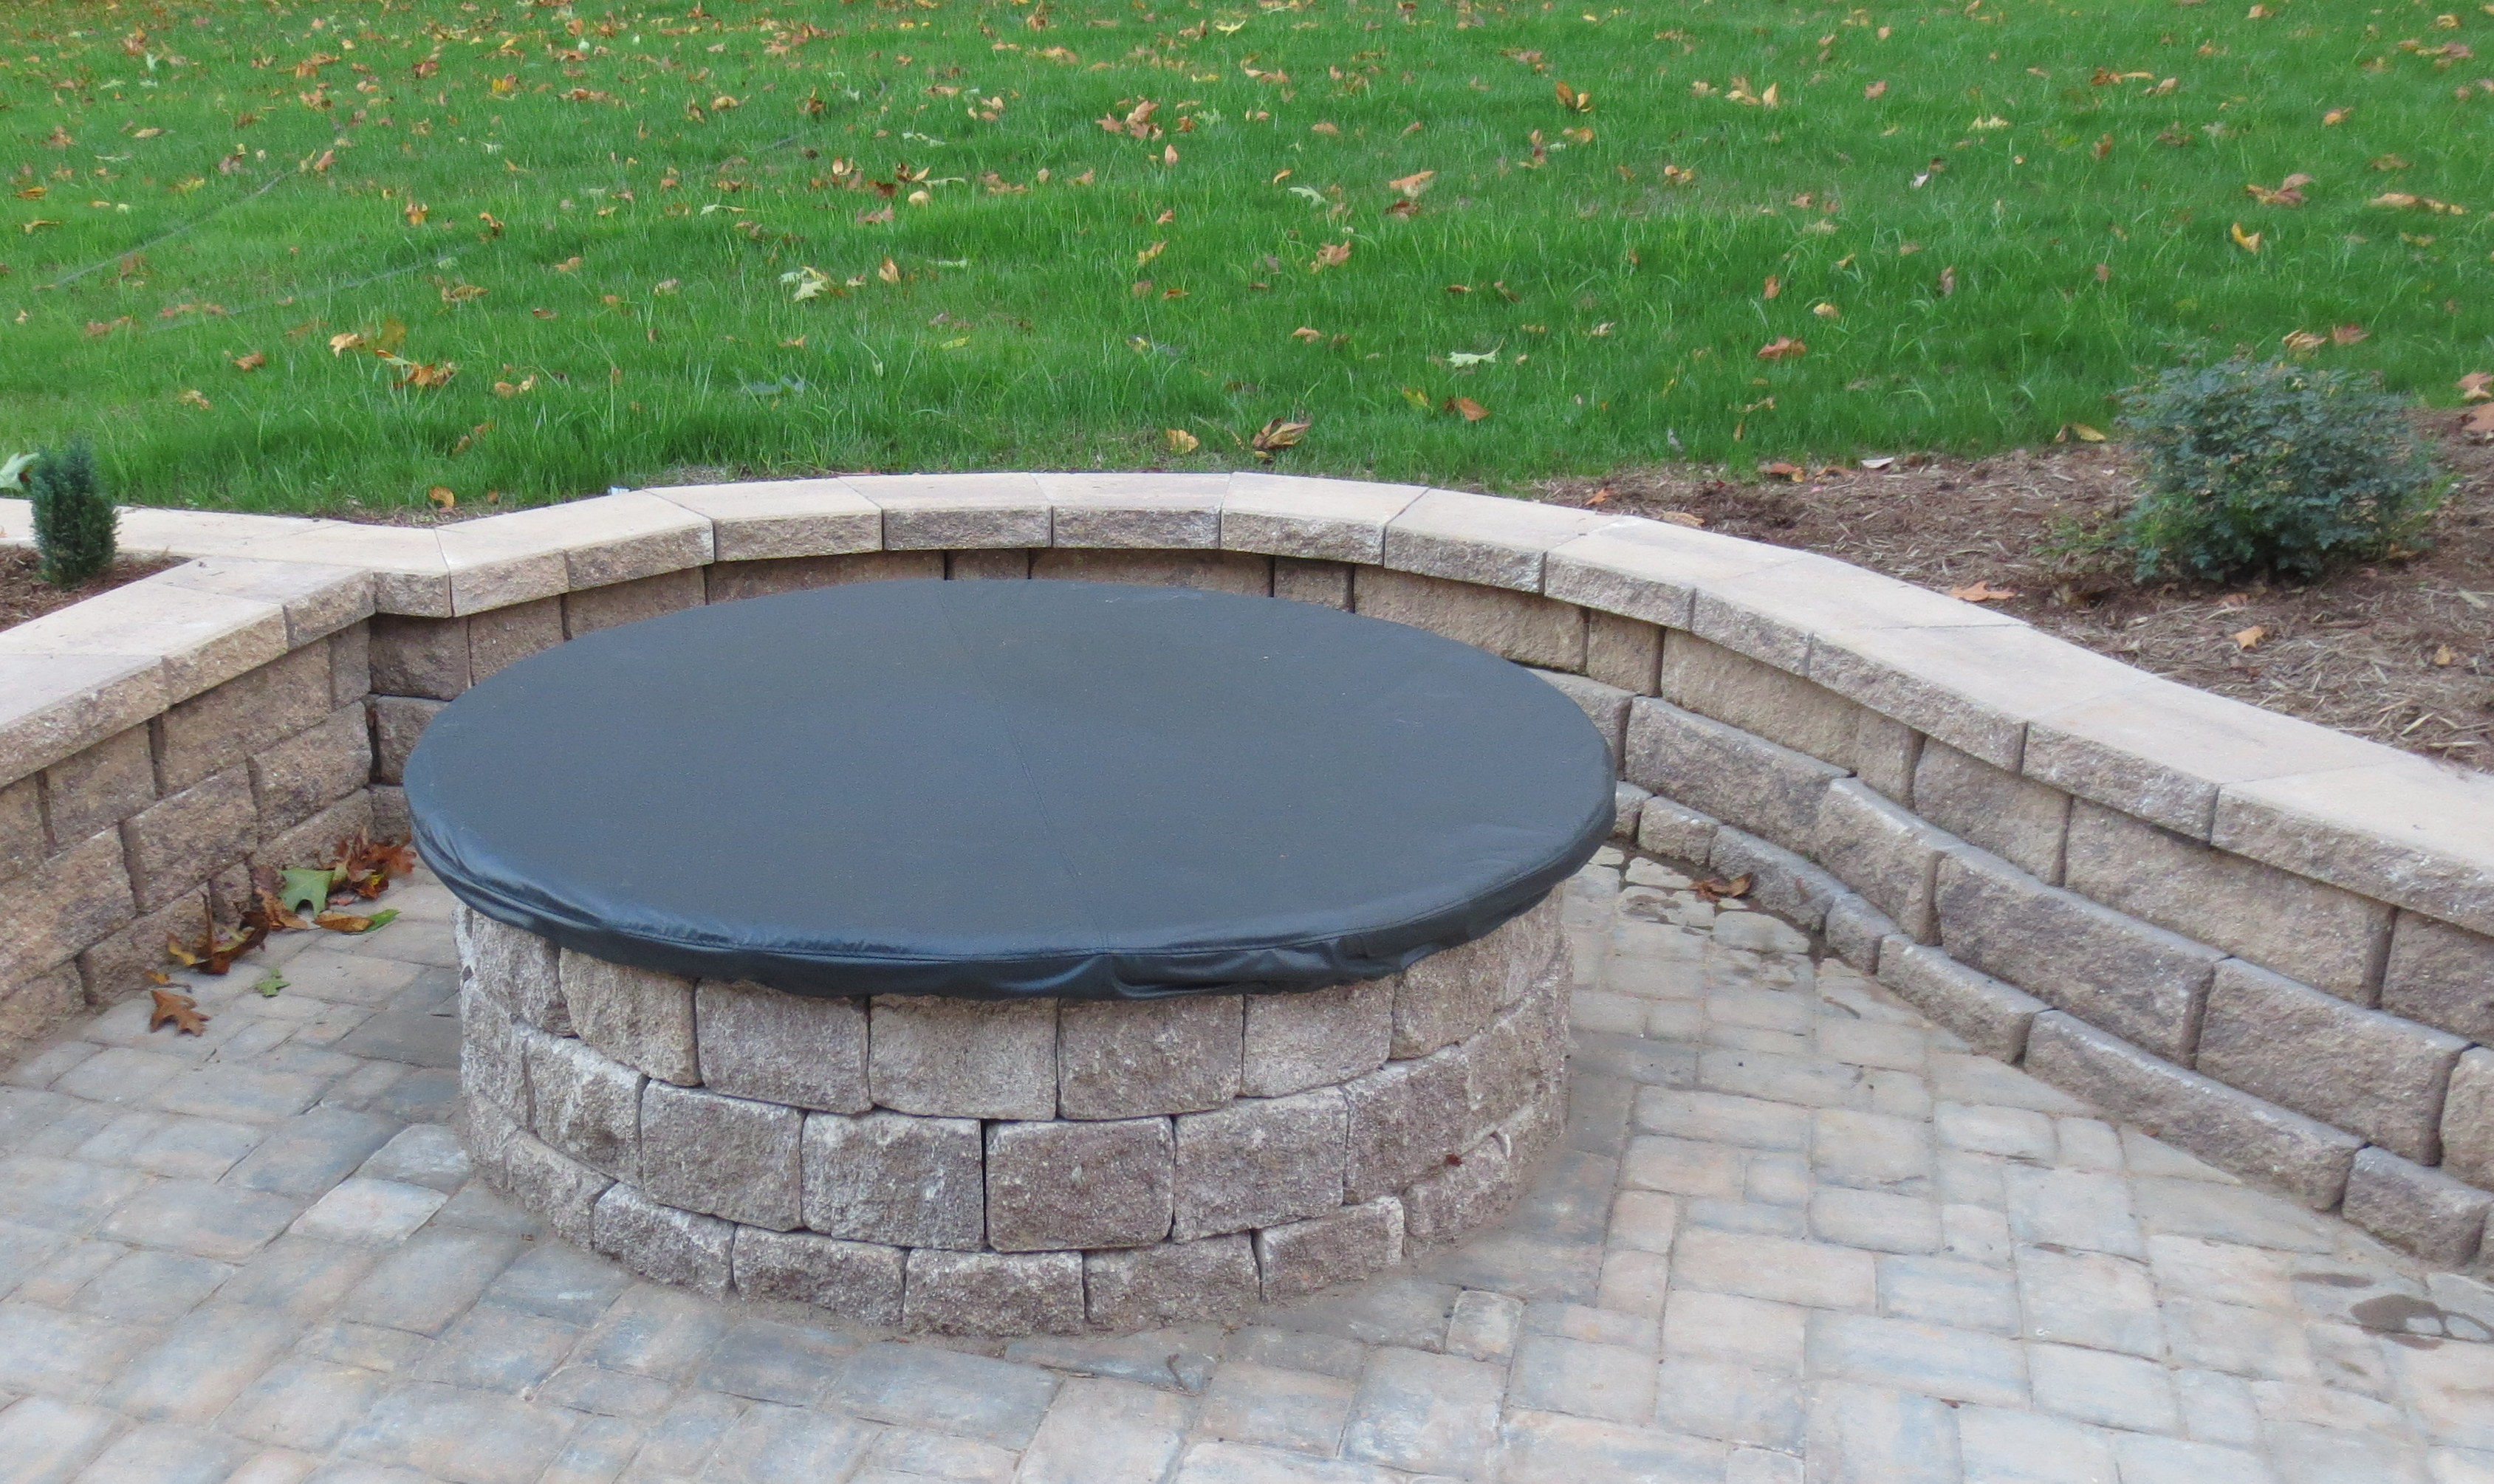 Fire Pit Cover Equip Home Fitness intended for proportions 3377 X 2010